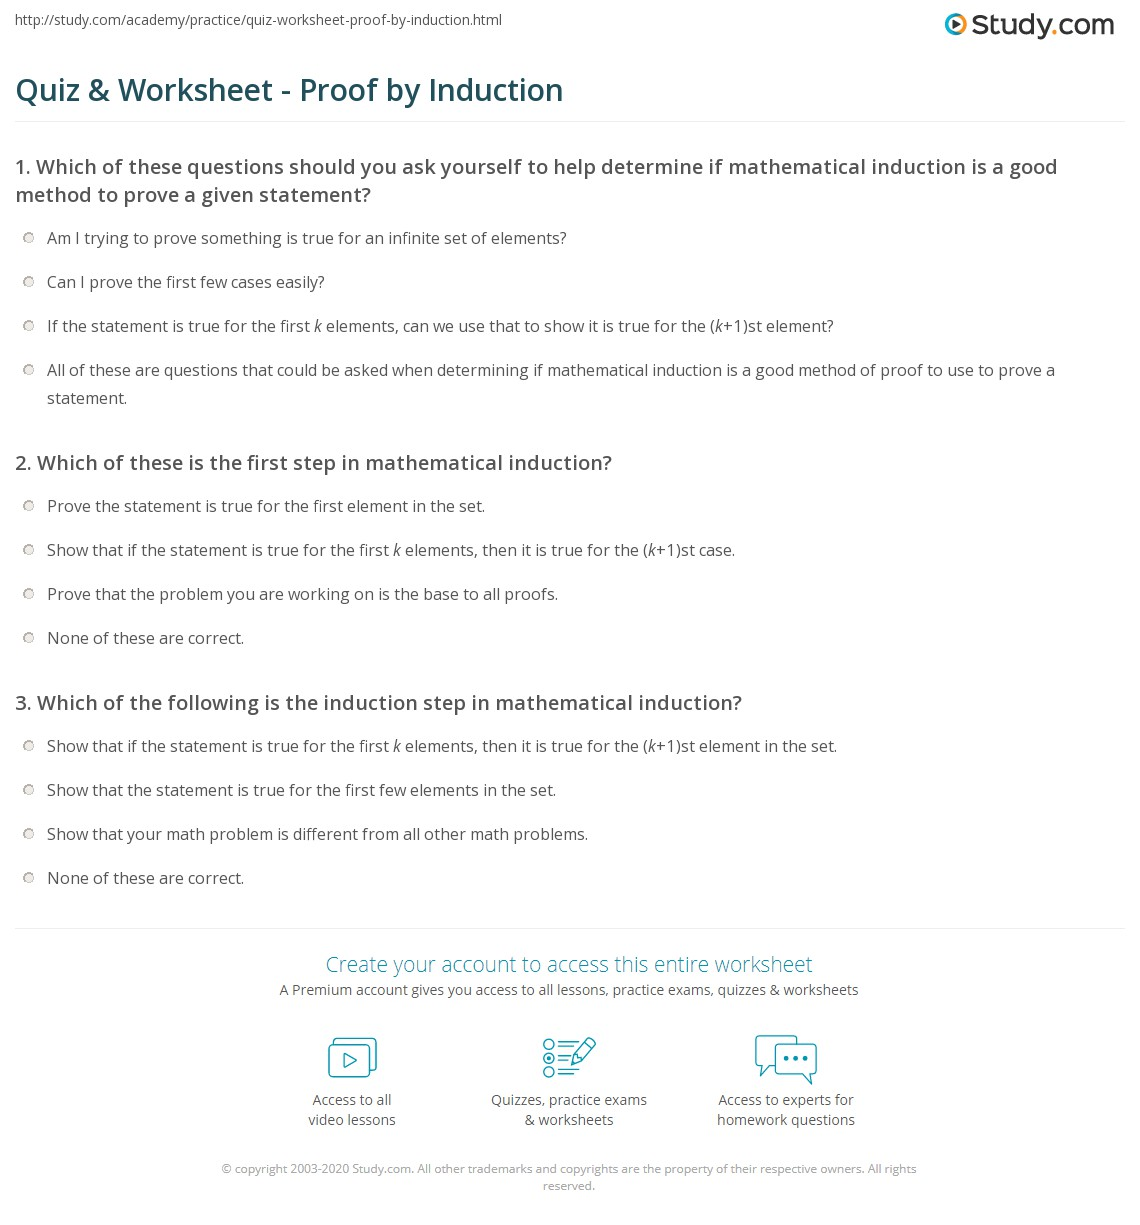 Quiz & Worksheet - Proof by Induction | Study.com